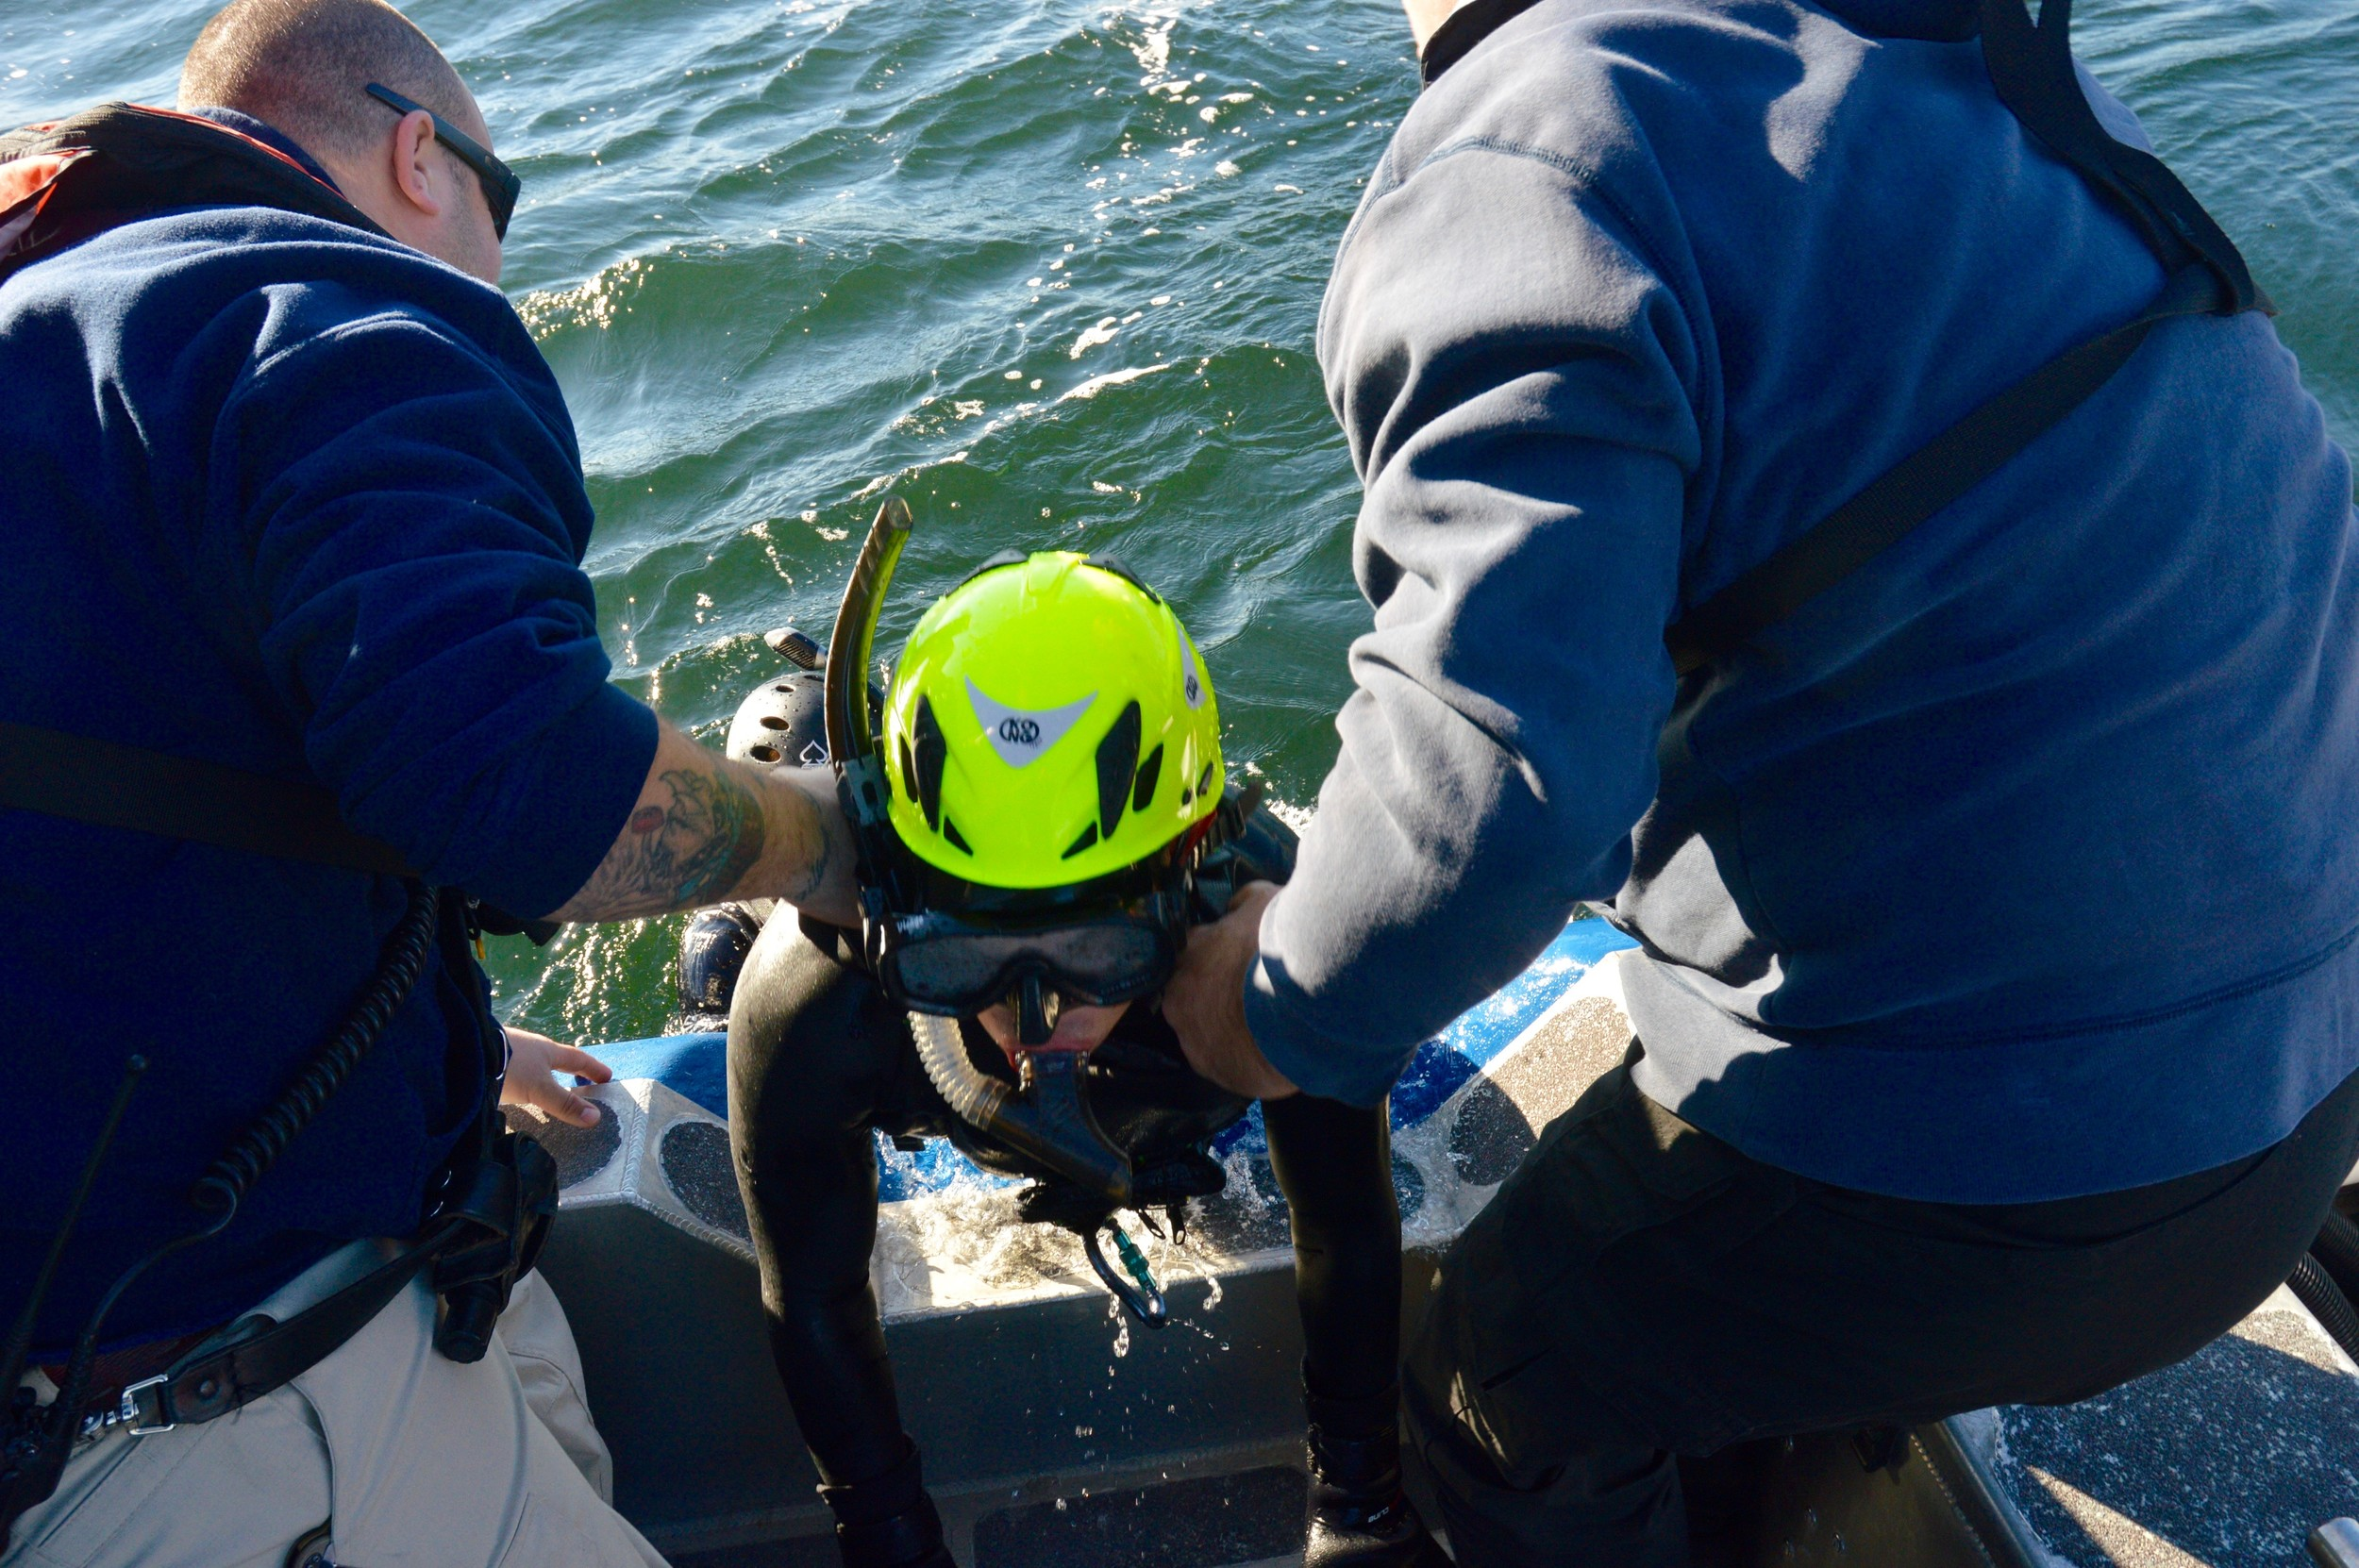 Charlie Dahl of the U.S. Coast Guard, playing a swimmer in distress, is dragged aboard the Portsmouth harbormaster's boat.